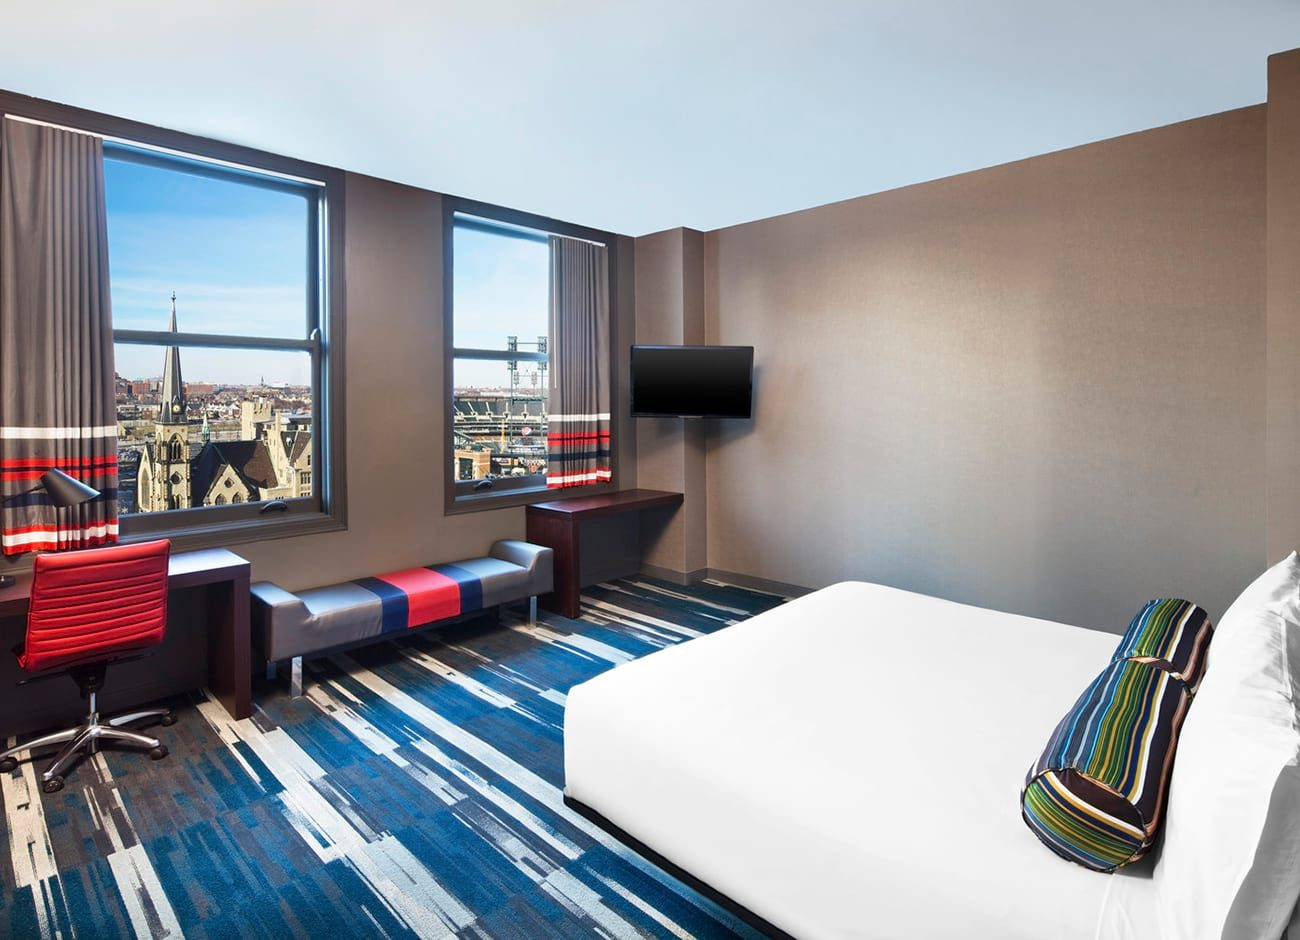 Room at the Aloft Detroit hotel